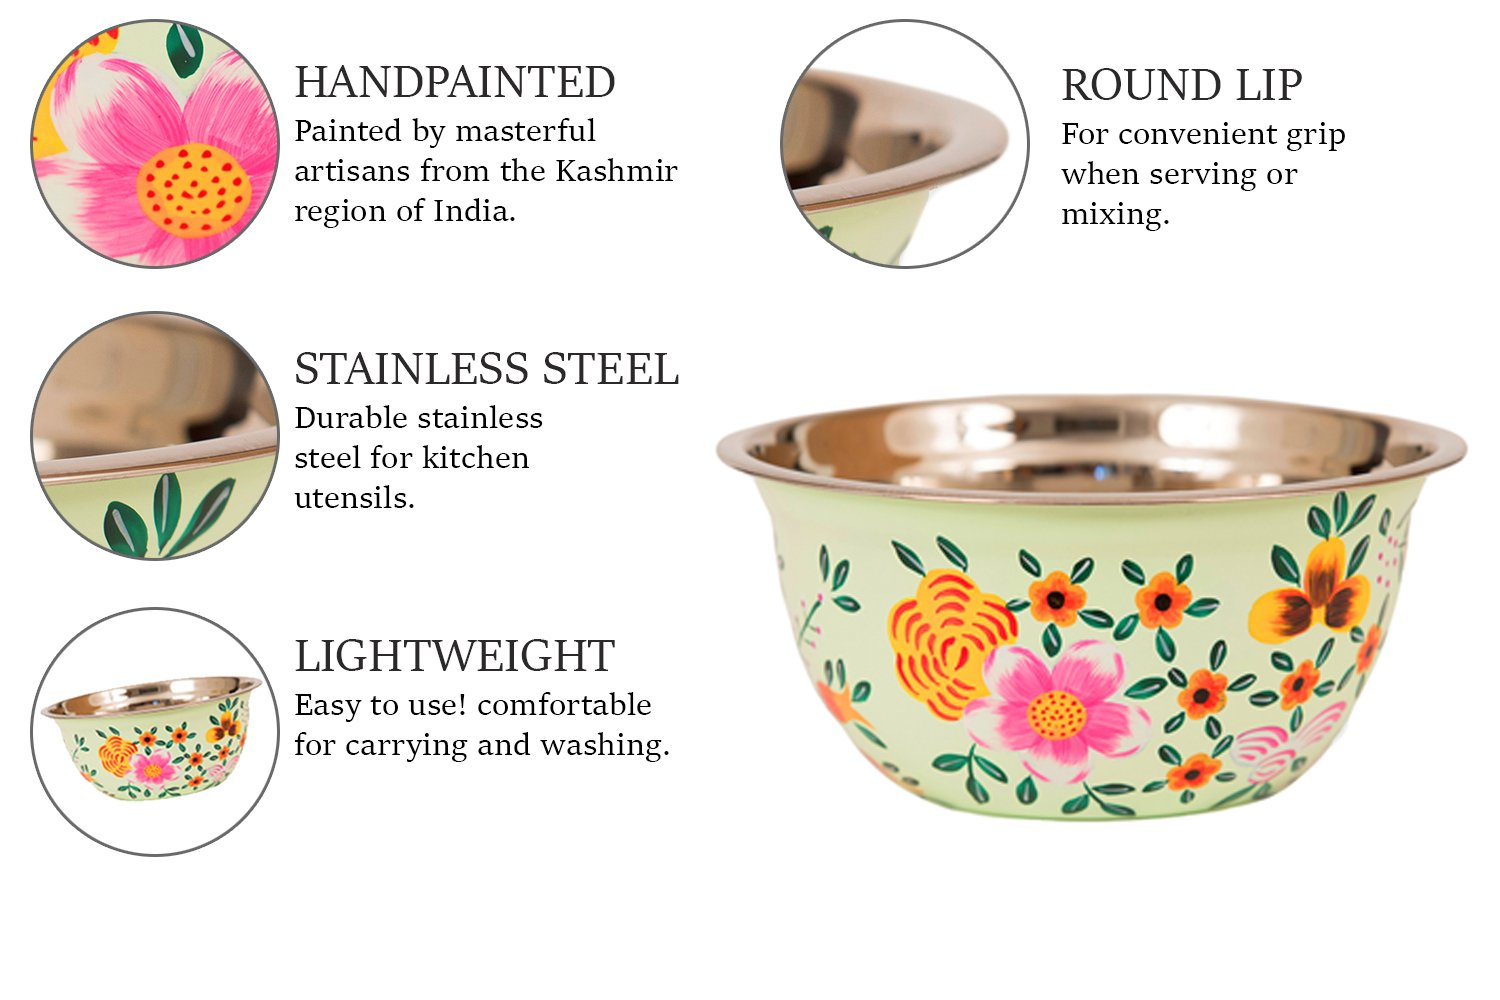 """Hand Painted Stainless Steel Bowl – Large Salad Bowl, Fruit Bowl, Mixing Bowl, & More – Decorative, Handmade Floral Art Bowl for Serving and Home Décor, 10"""" Diameter, 3.6L Volume by, Spices Home Decor by Spices home decor (Image #4)"""